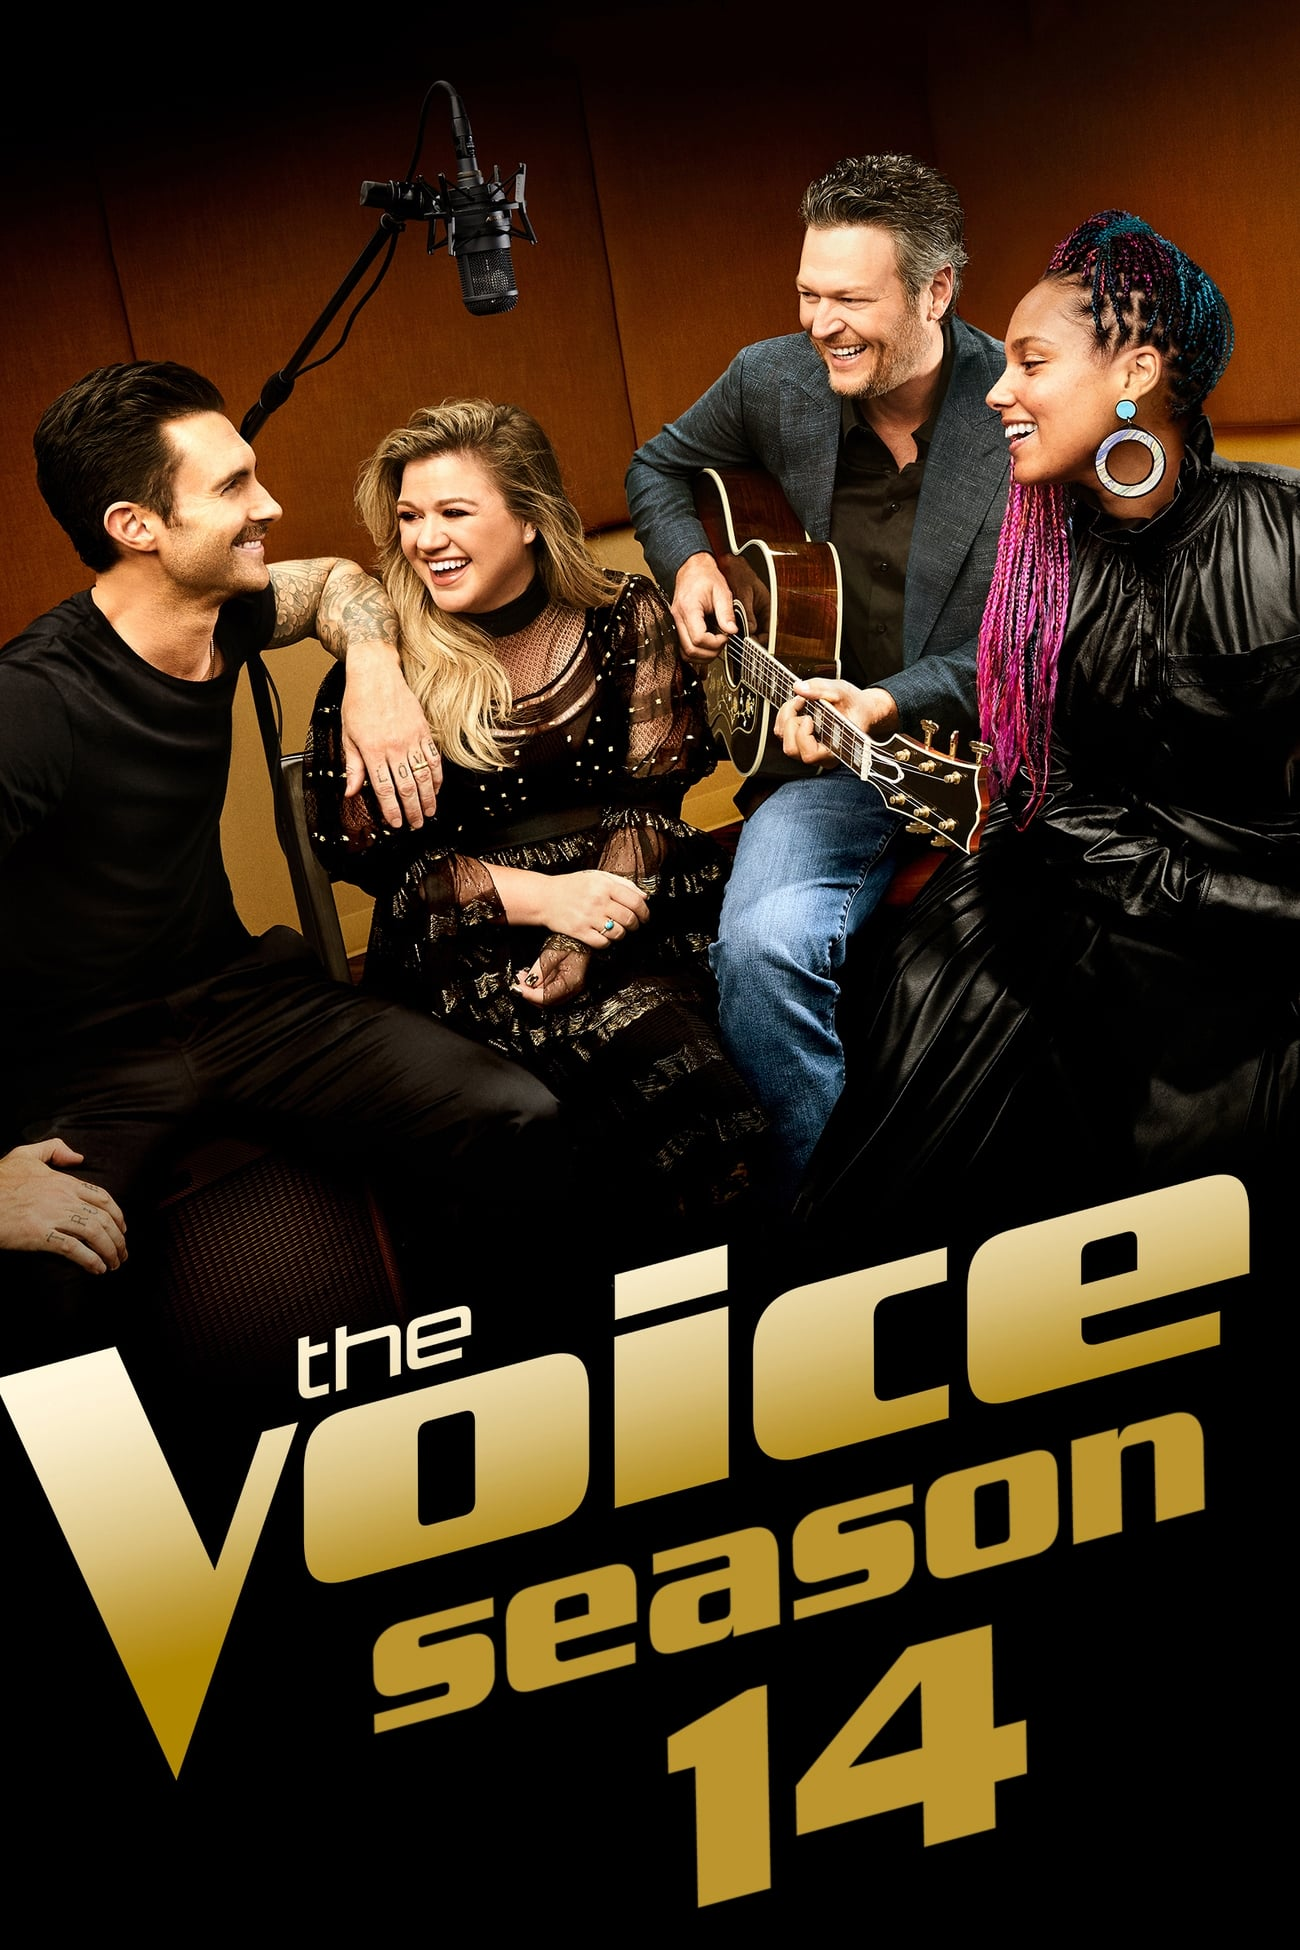 The Voice Season 14